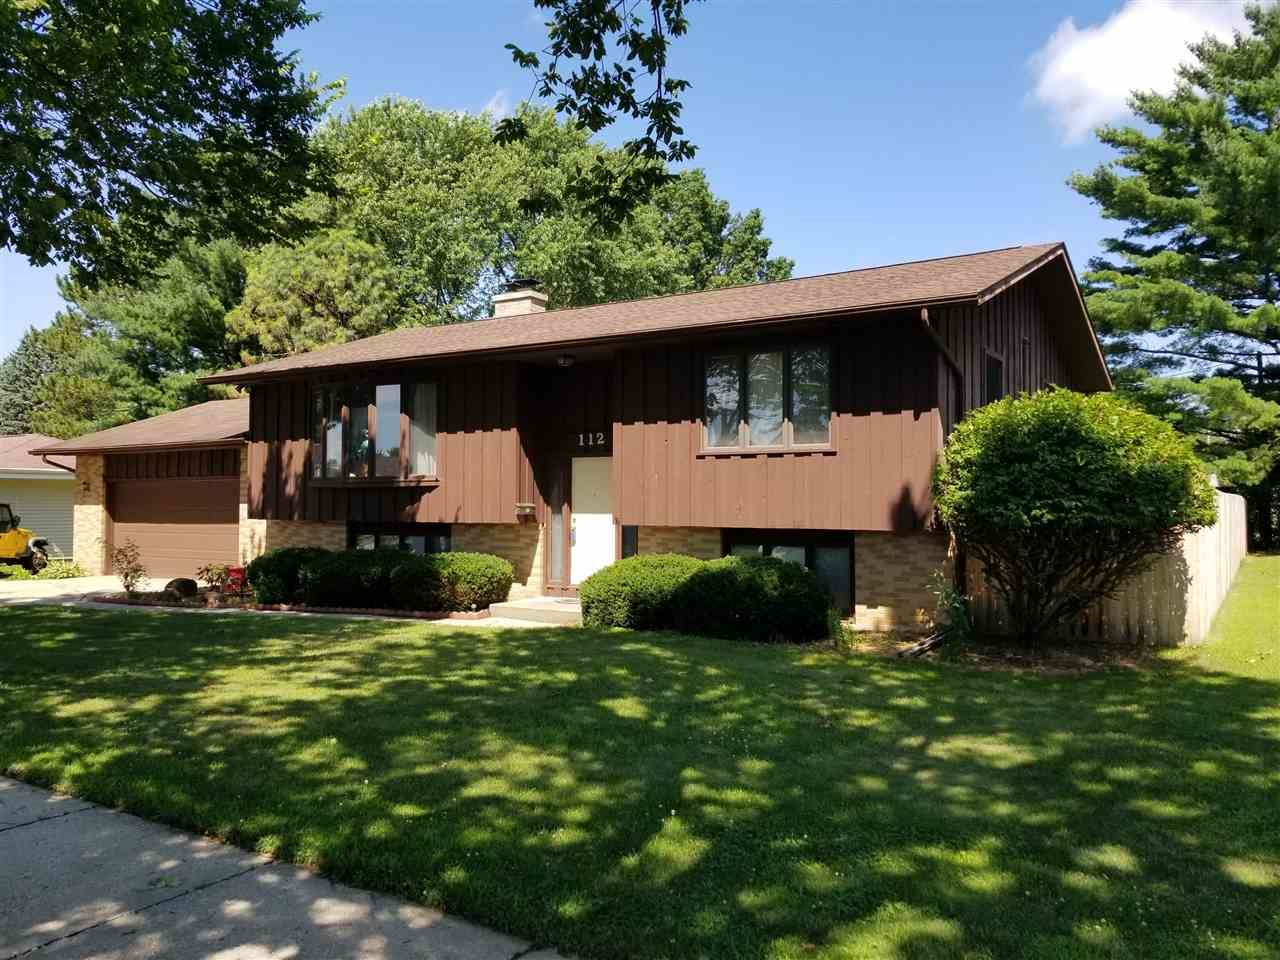 f_1888128 Our Listings at Best Realty of Edgerton